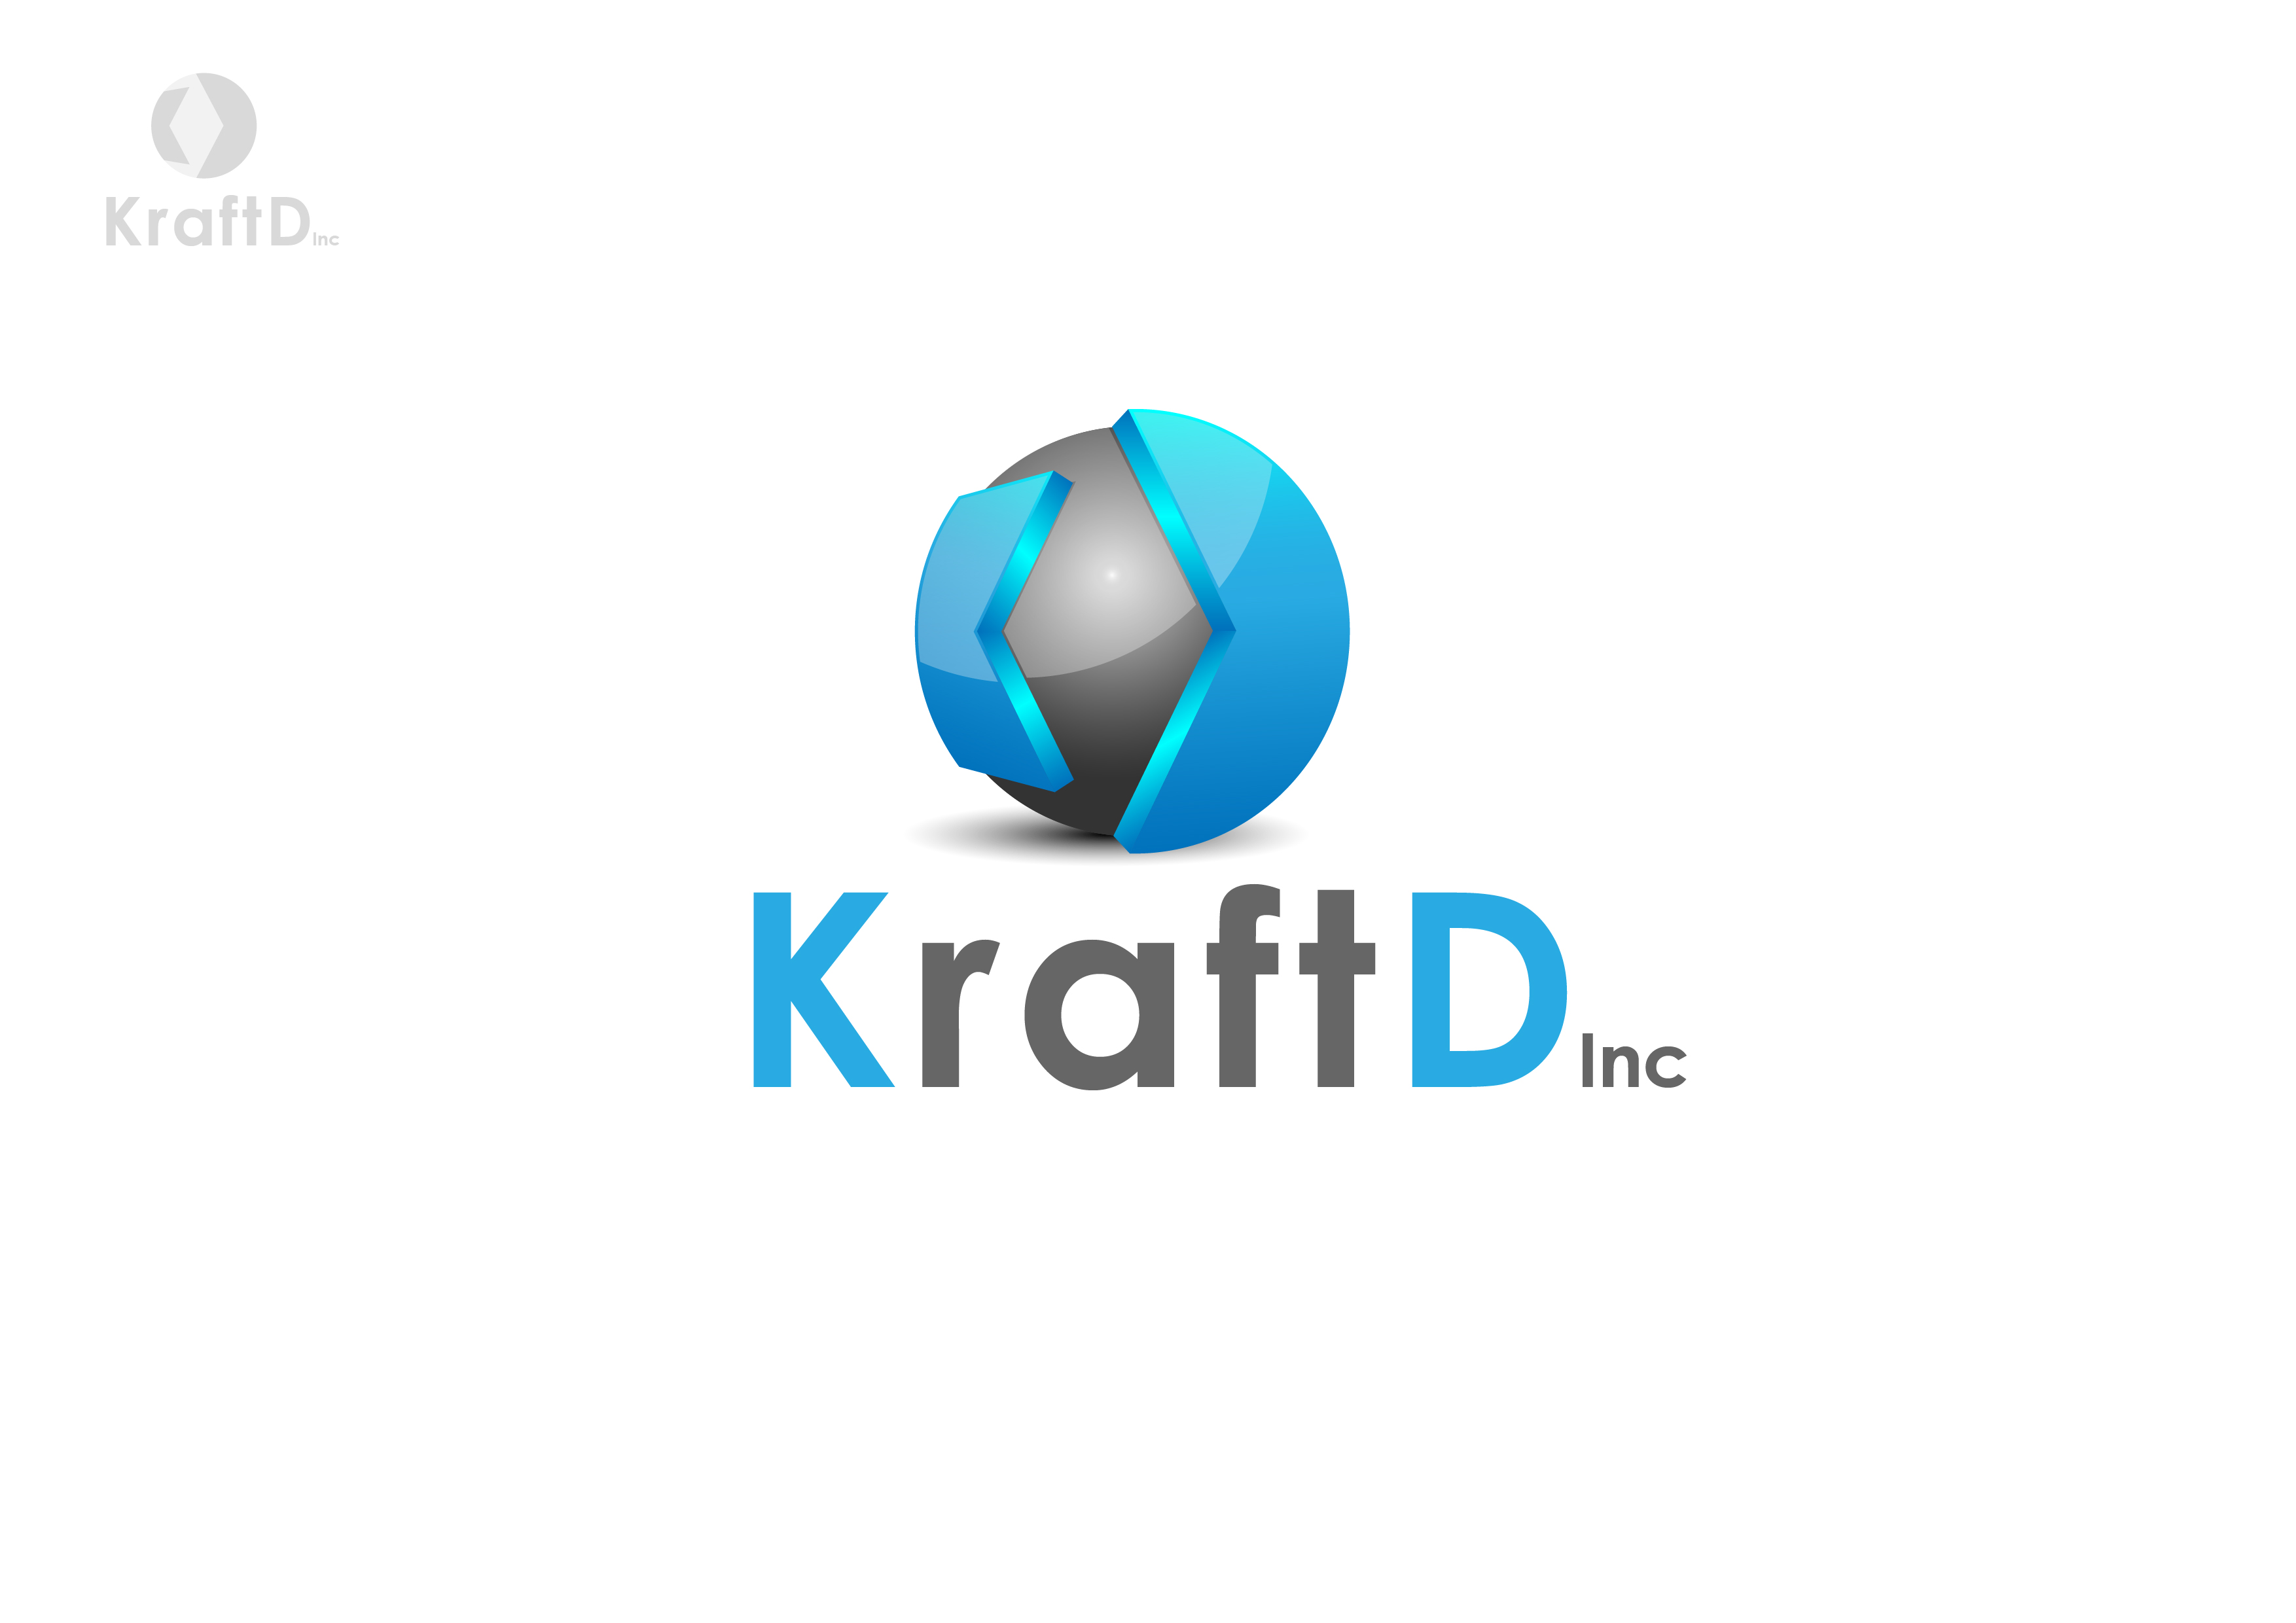 Logo Design by 3draw - Entry No. 409 in the Logo Design Contest Unique Logo Design Wanted for Kraft D Inc.